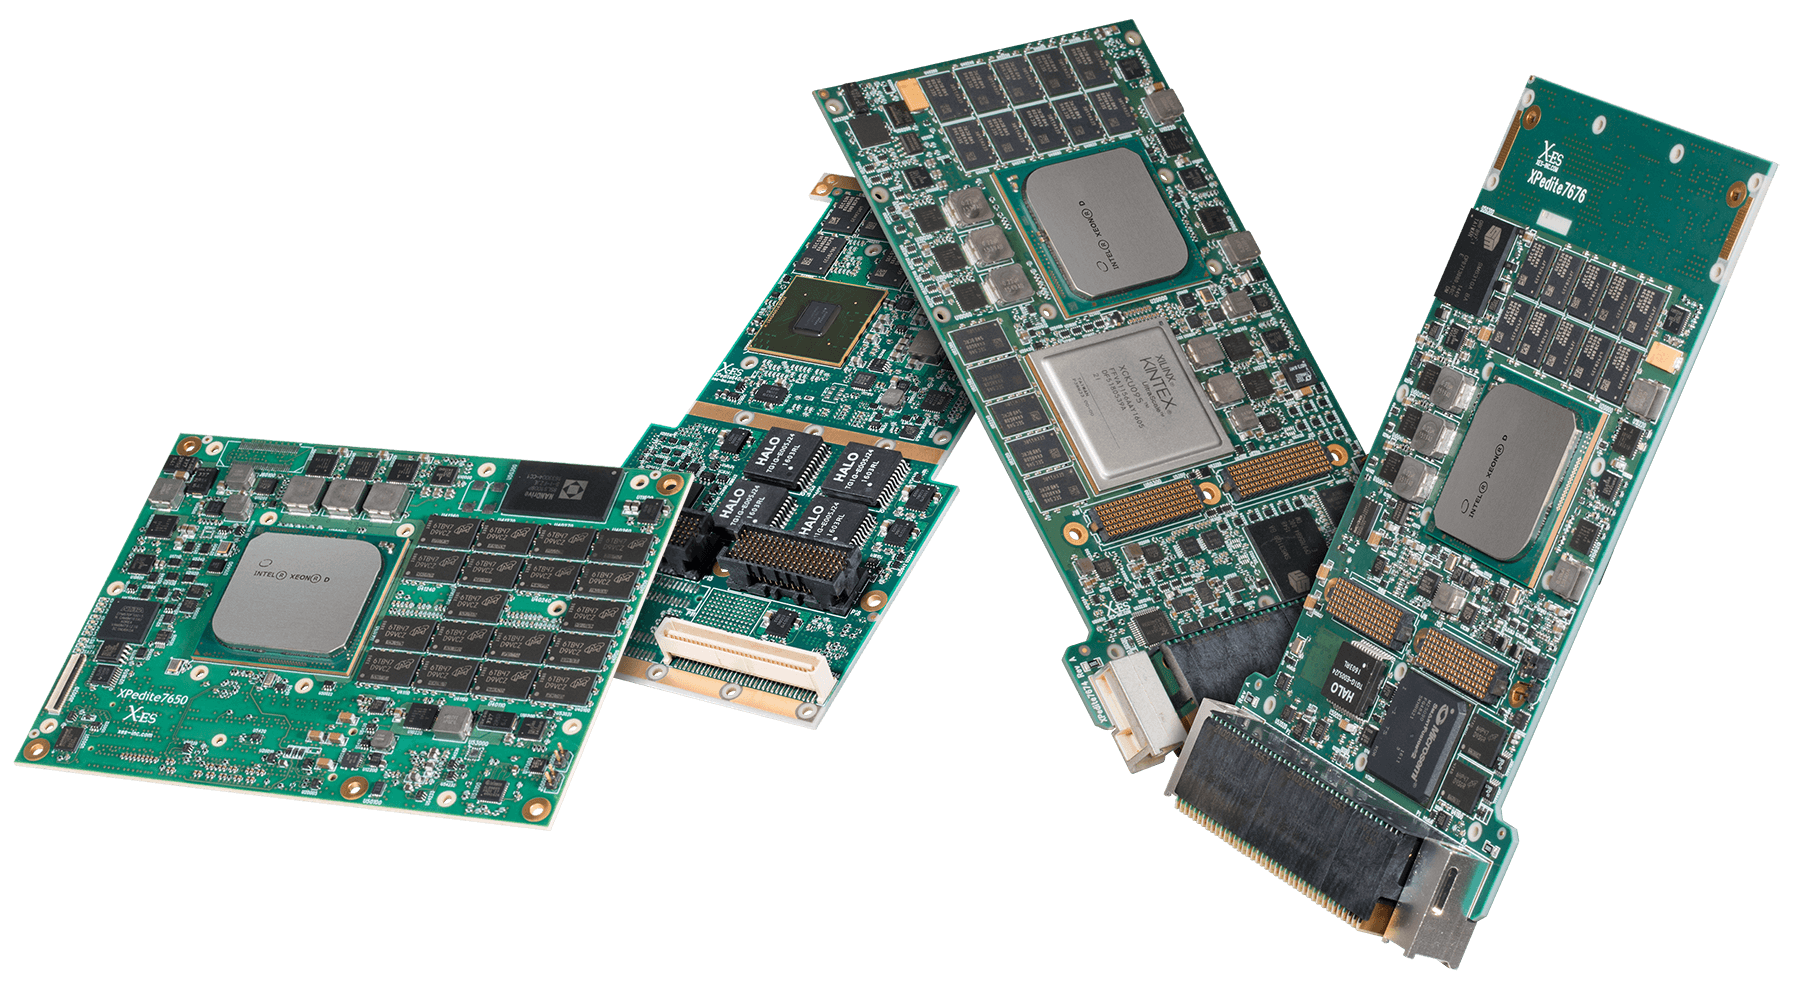 X-ES Embedded Processor Boards